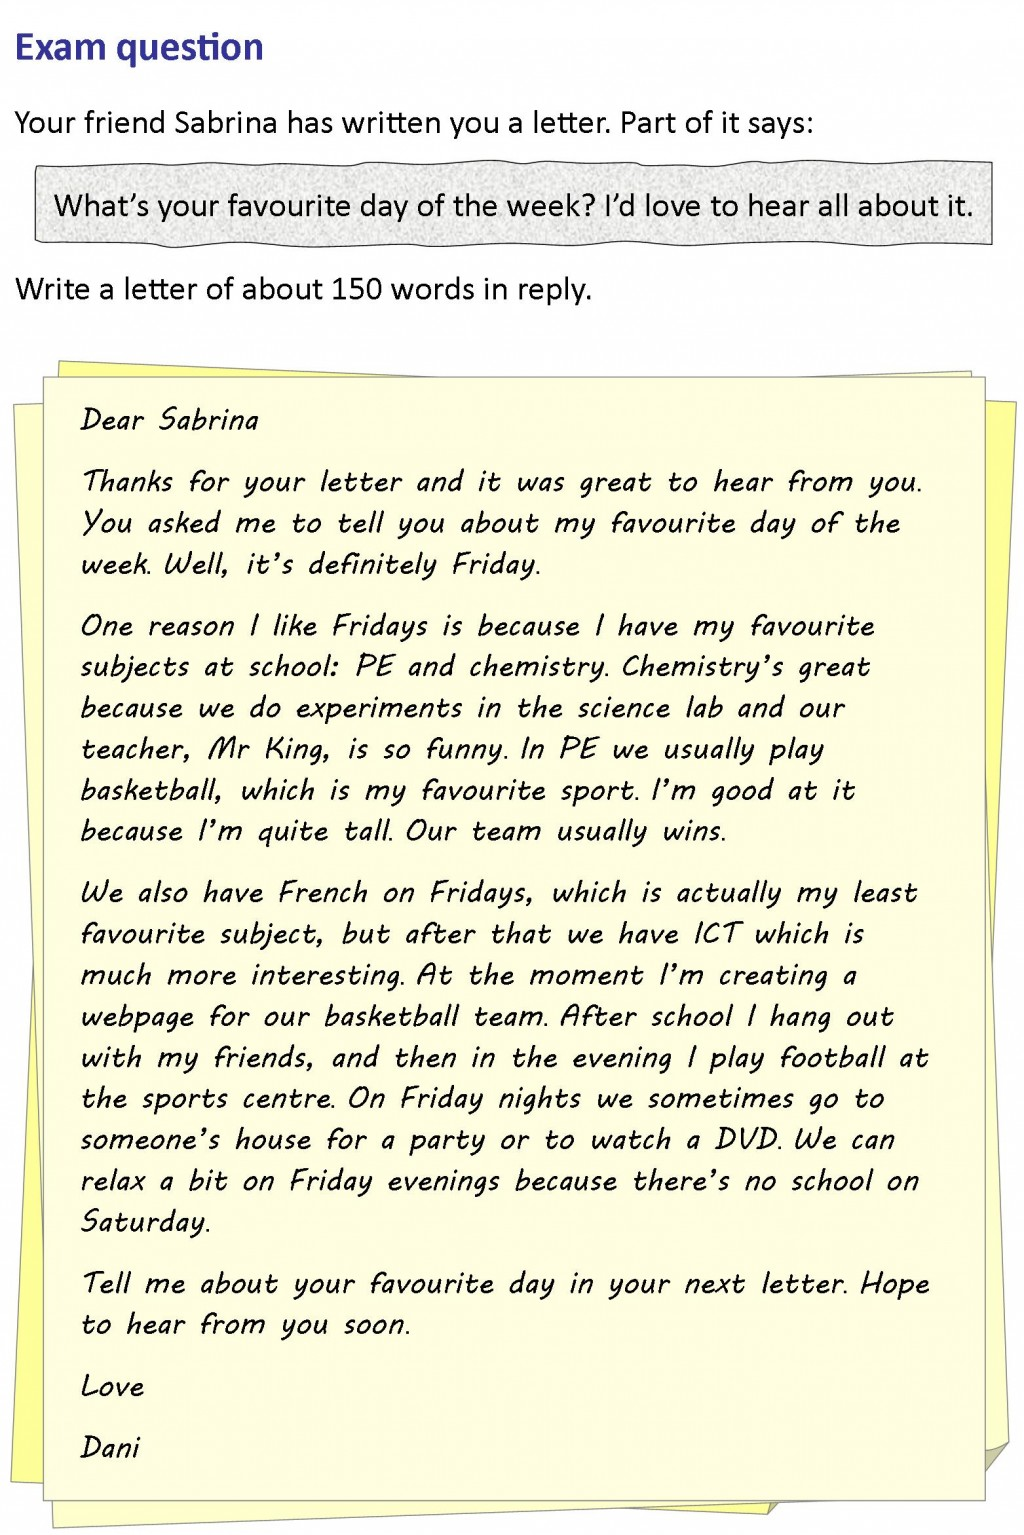 004 Favorite Day Of The Week Essay Example Letter To A Friend Outstanding Sunday Is My Large